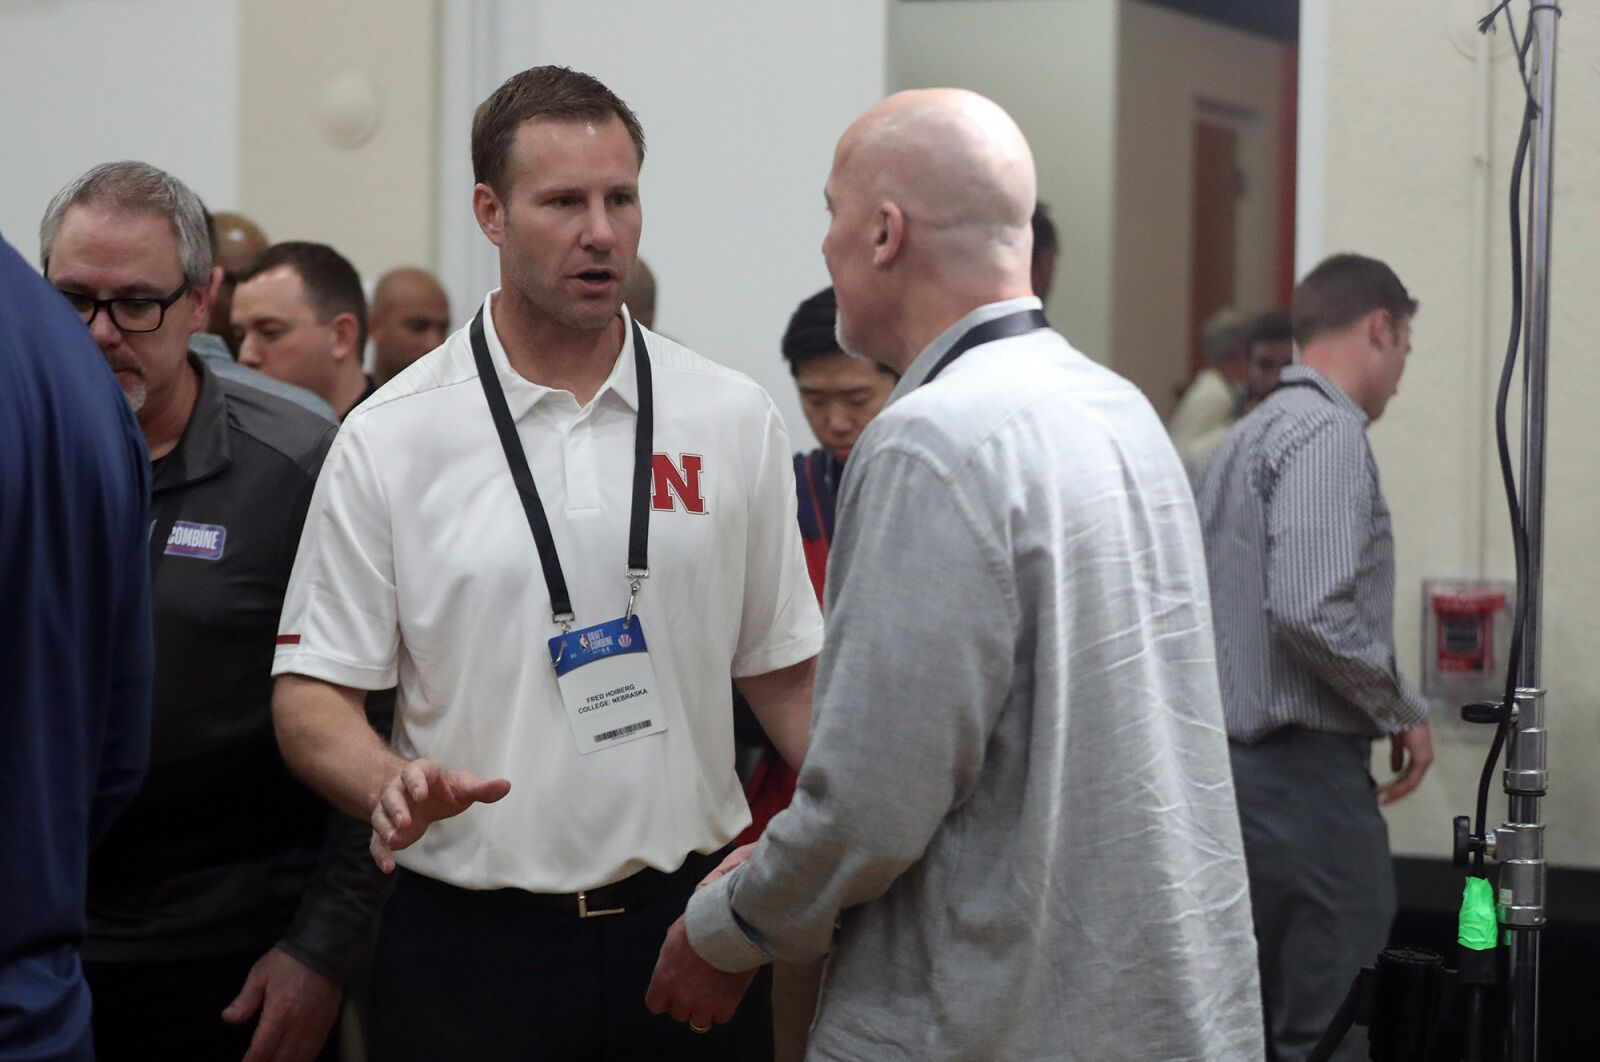 For Nebraska Basketball, the work and rebuilding process starts now